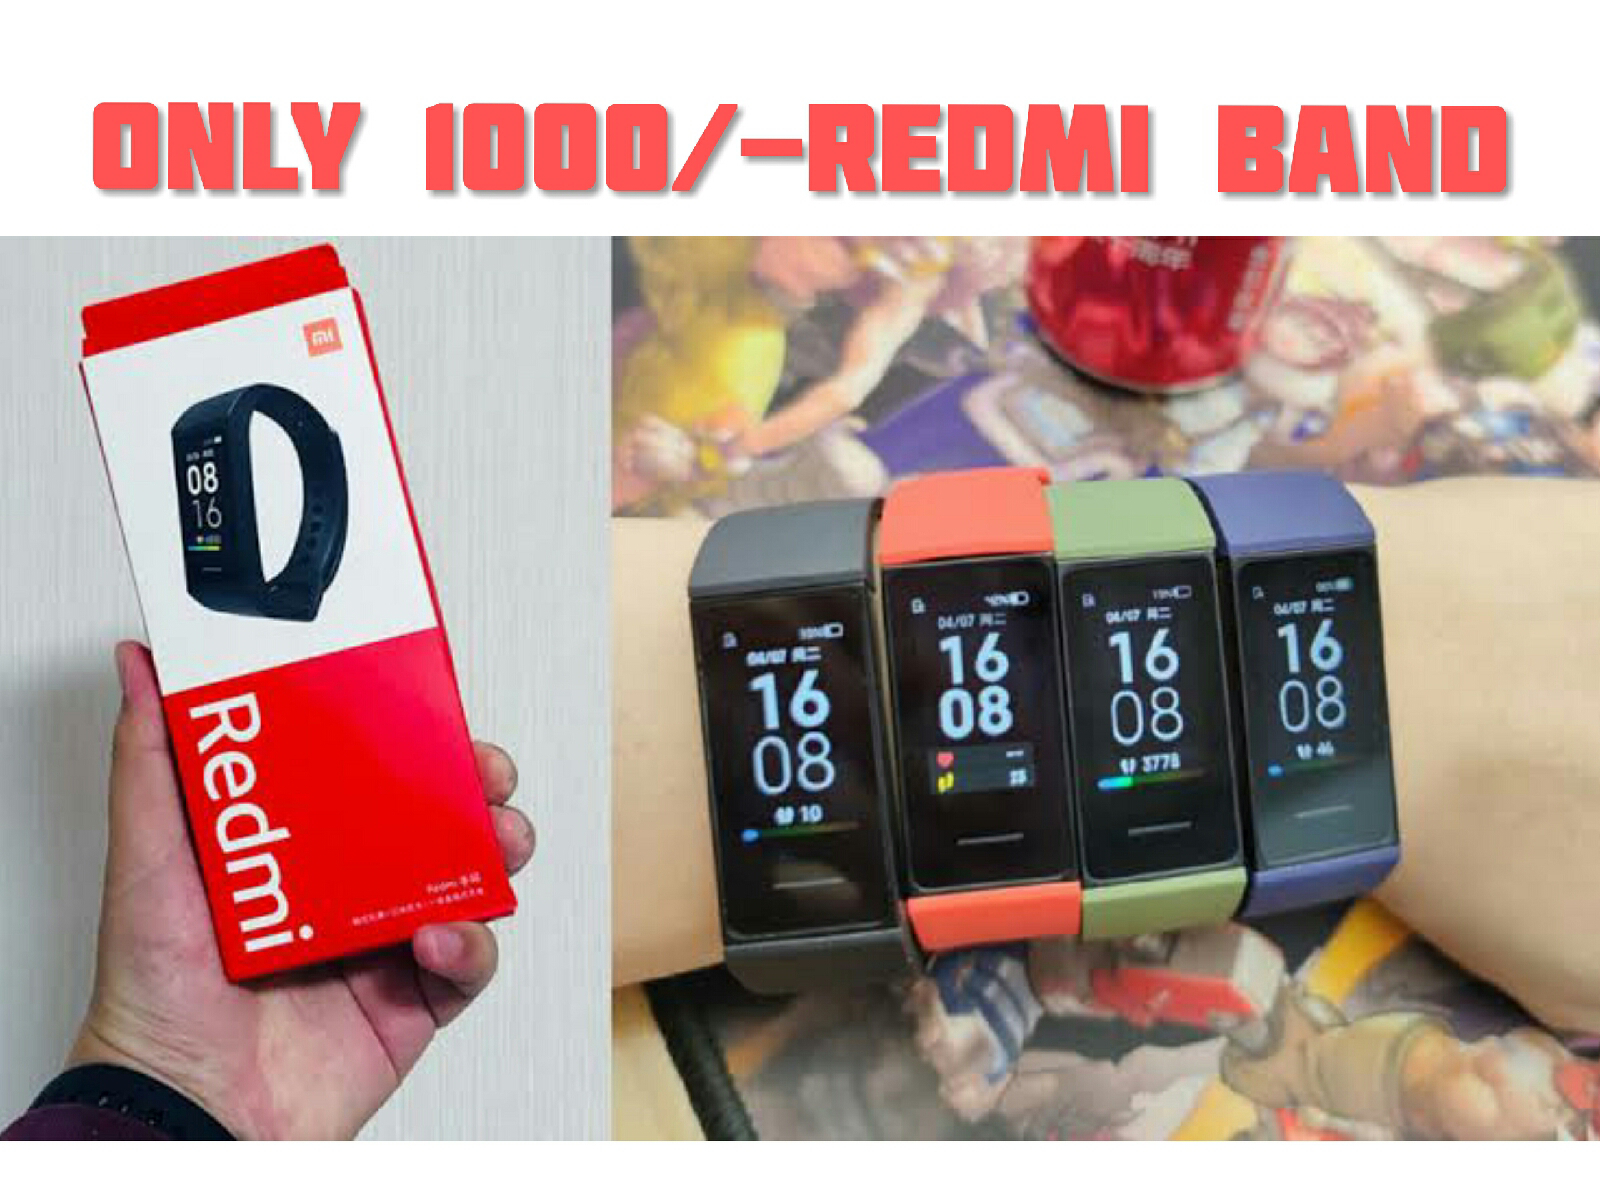 Redmi Band Unboxing & First Look - Only 1000Rs ??? Best Fitness Band - India Launching Soon